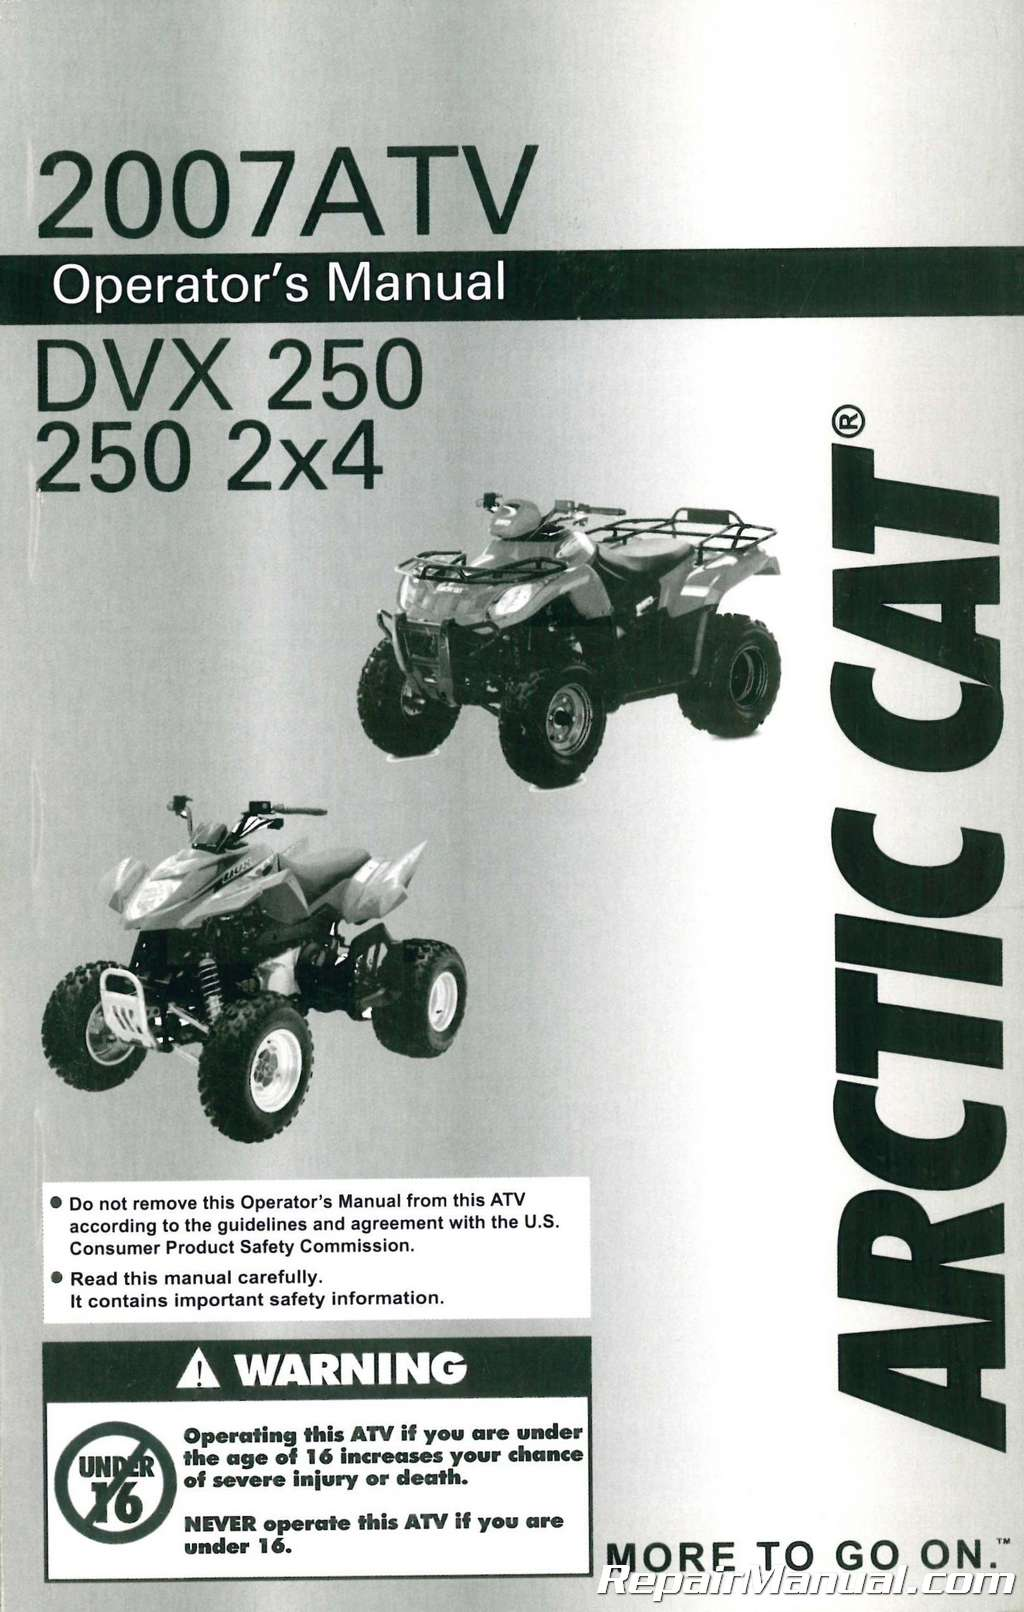 2007 arctic cat 250 dvx 2 4 owners manual rh repairmanual com Arctic Cat ATV Specifications 2007 arctic cat 400 atv service manual